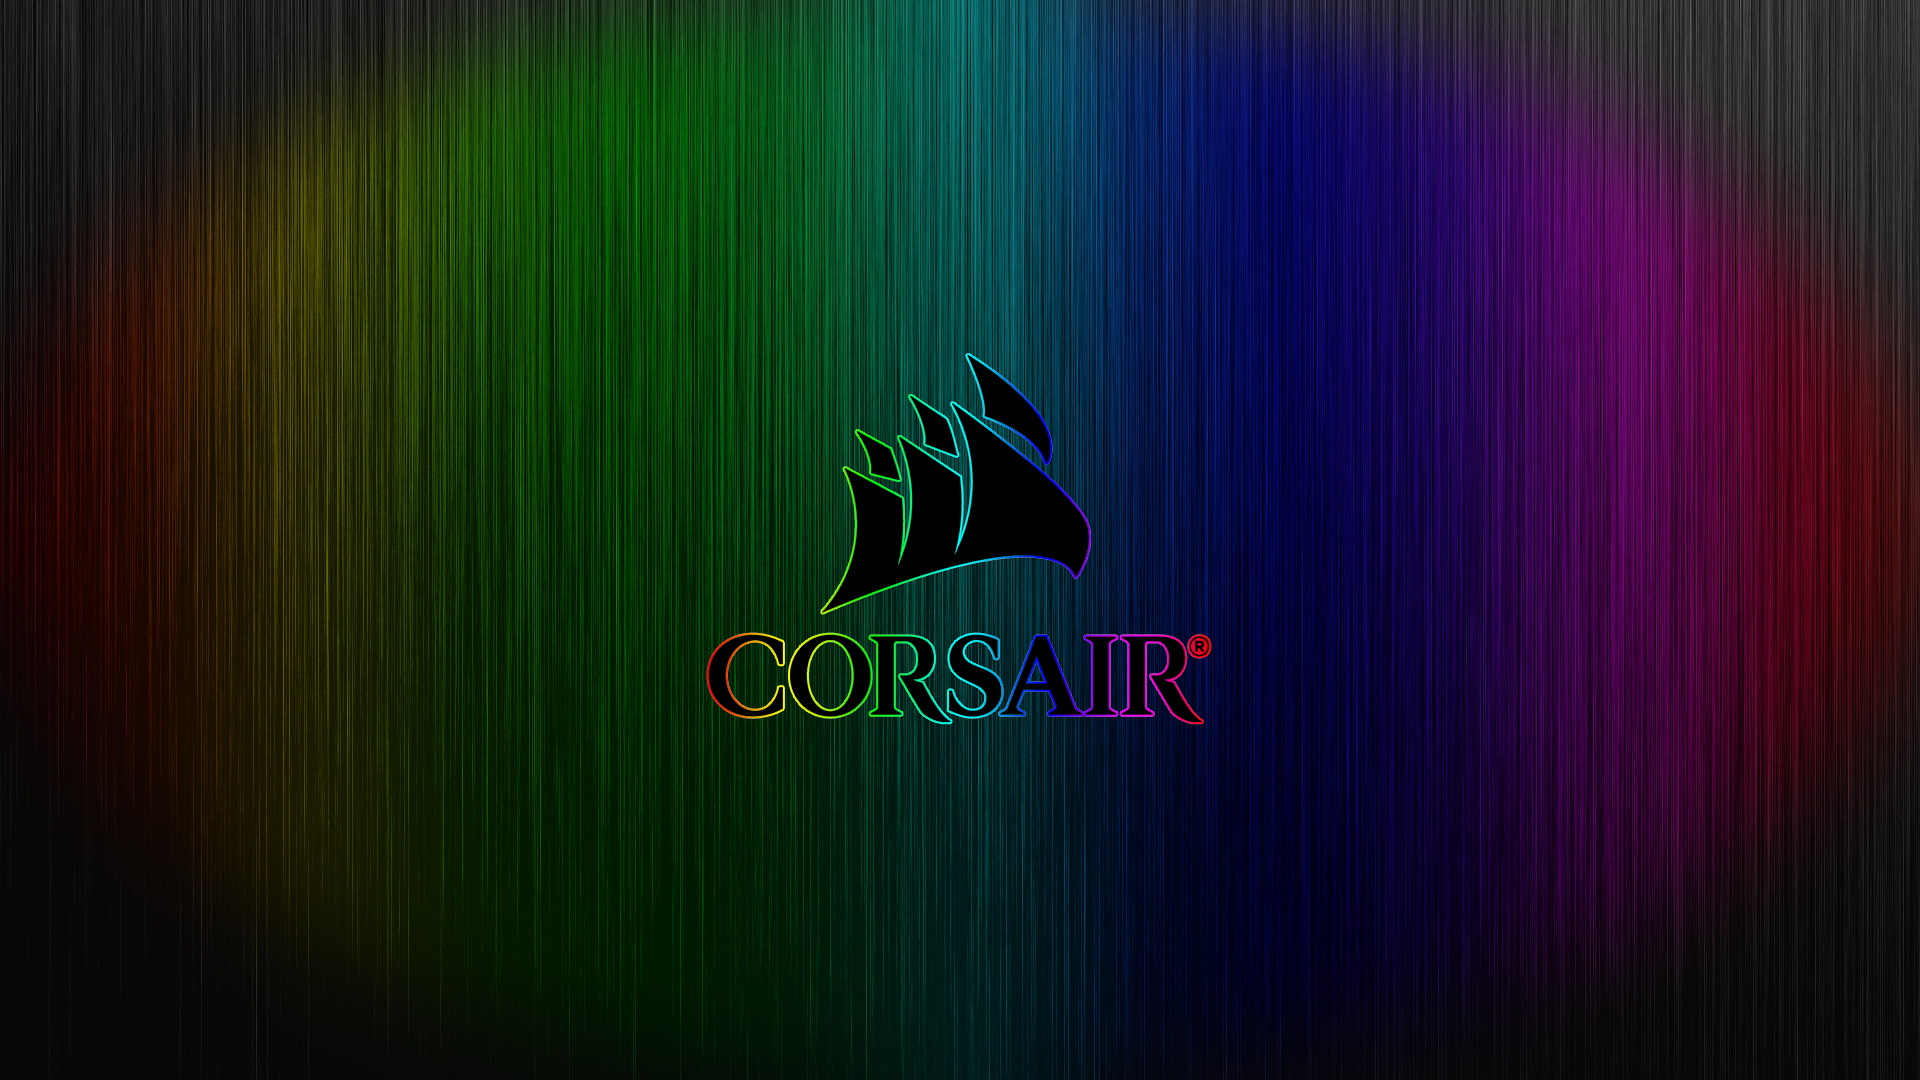 corsair gaming wallpaper wallpapersafari